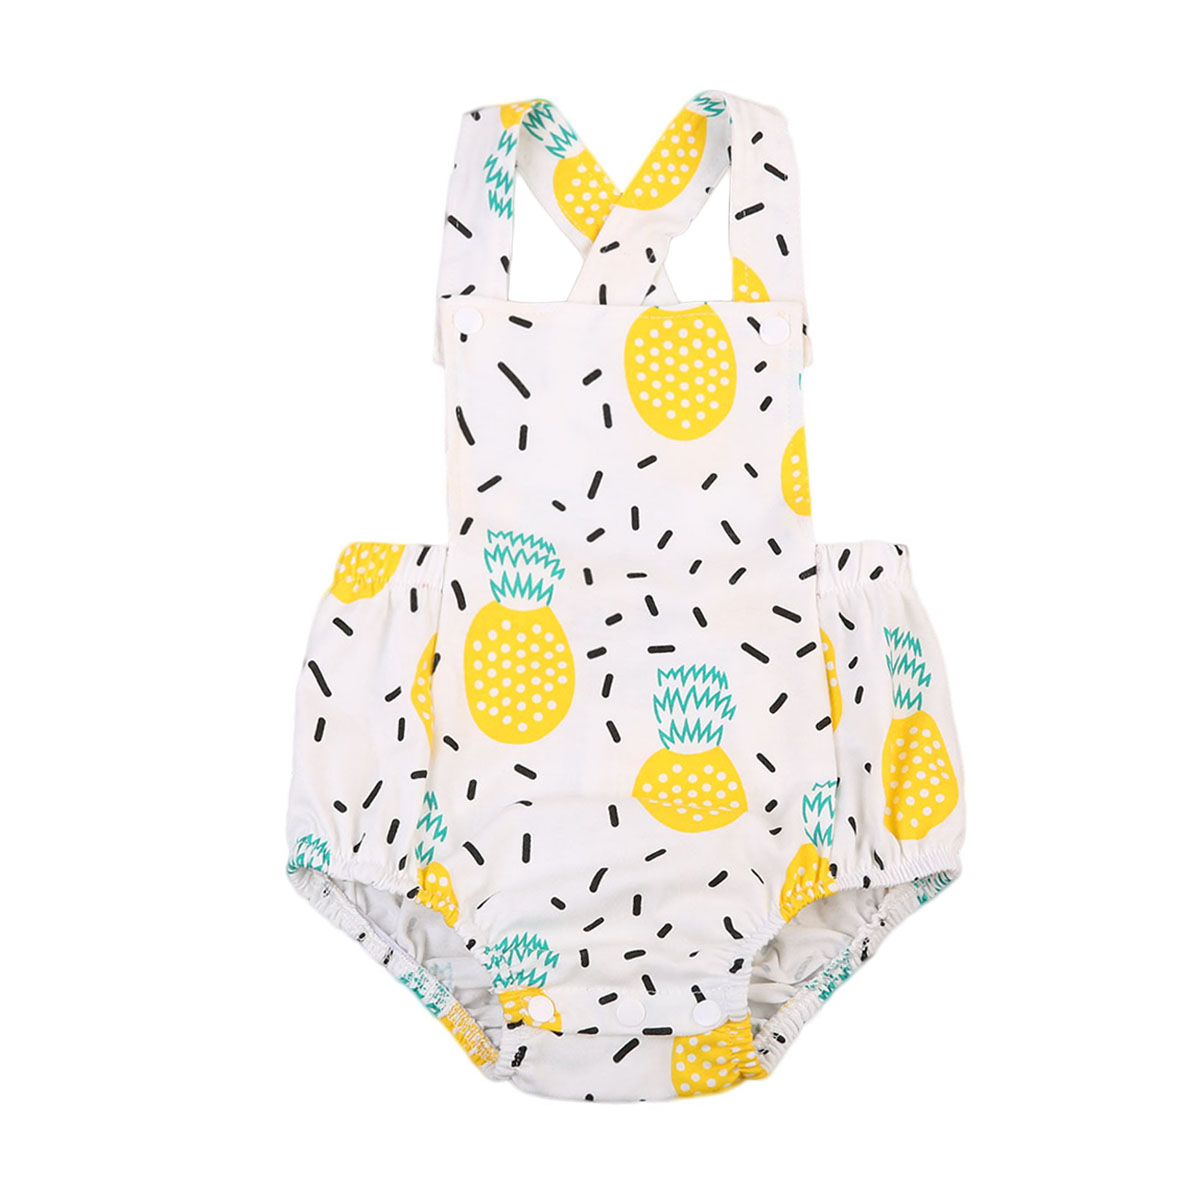 Cute Baby Girl Clothes Pineapple Print Sleeveless   Romper   Back Cross Jumpsuit Outfit Playsuit Sunsuit Clothing